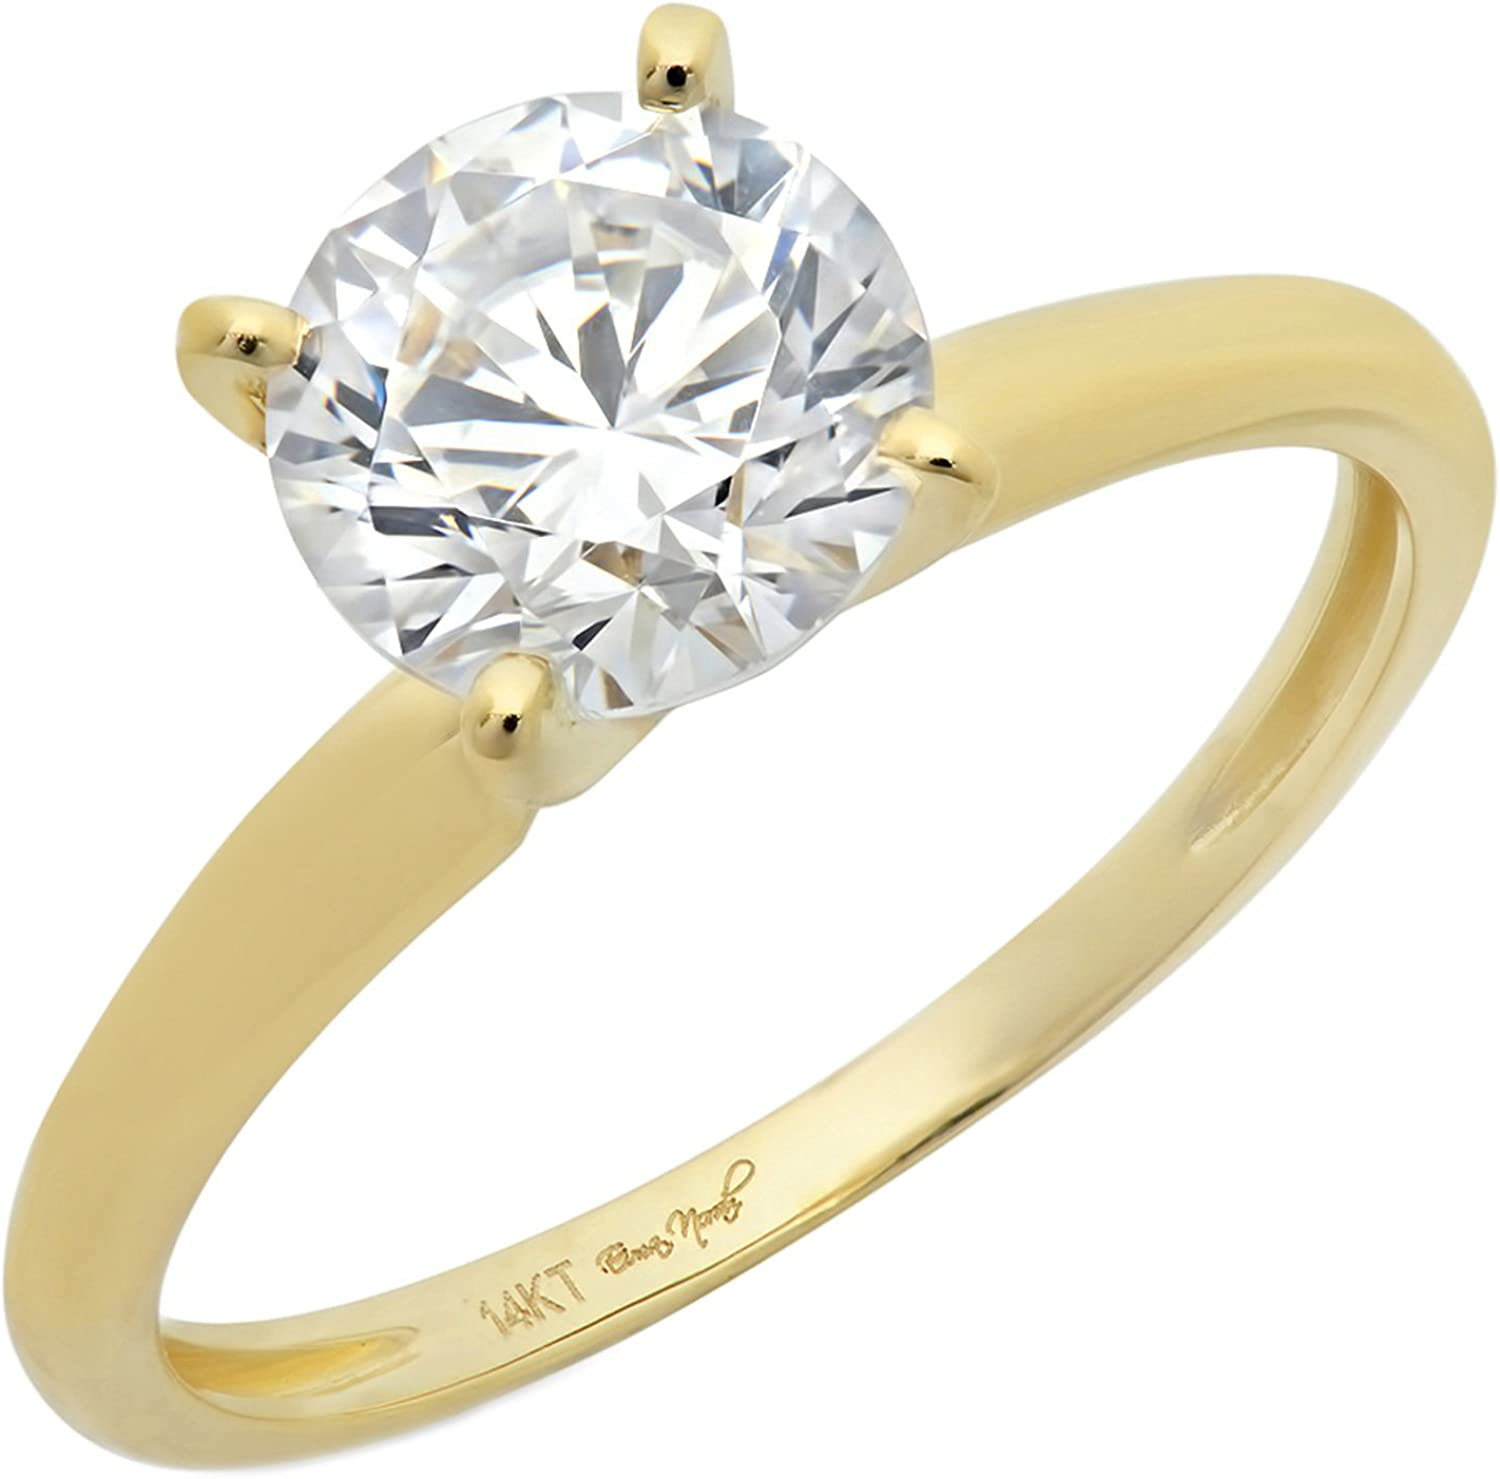 Clara Pucci 2.0 CT Brilliant Round Cut Simulated Diamond CZ Designer 4-Prong Solitaire Anniversary Promise Bridal Wedding Ring Solid 14k Yellow Gold